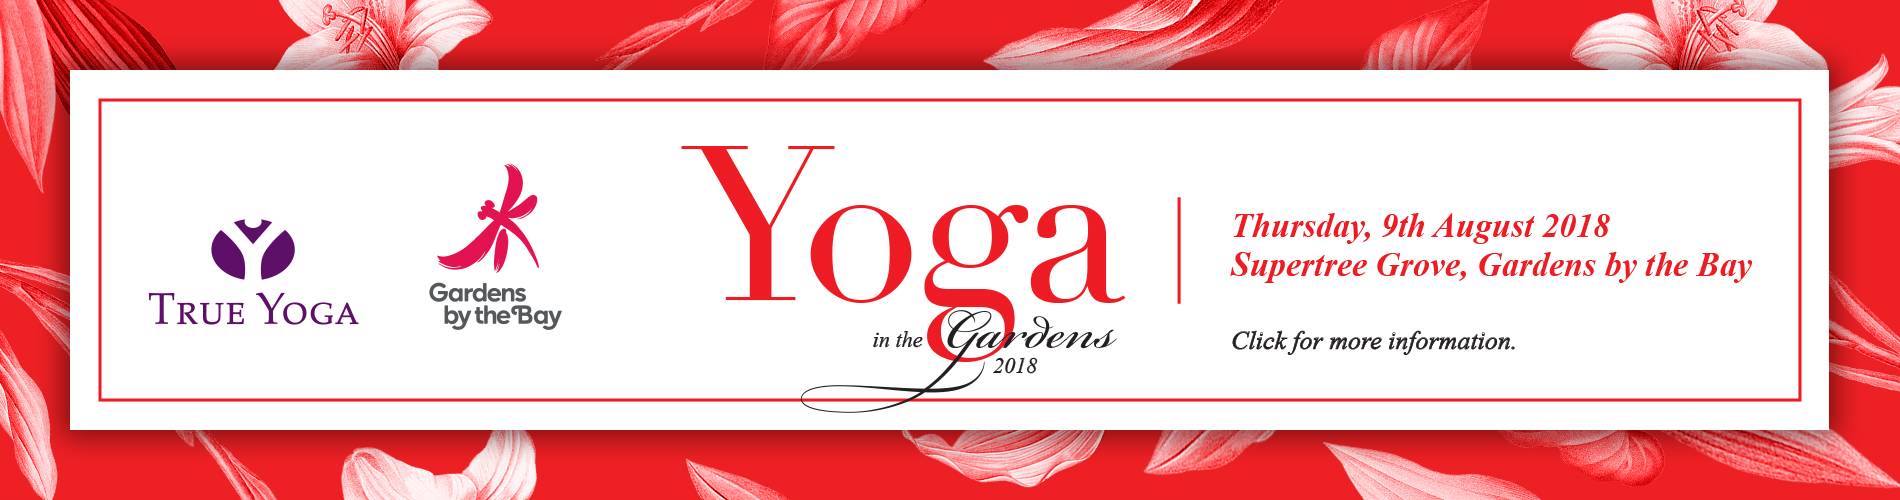 Yoga in the Gardens 2018